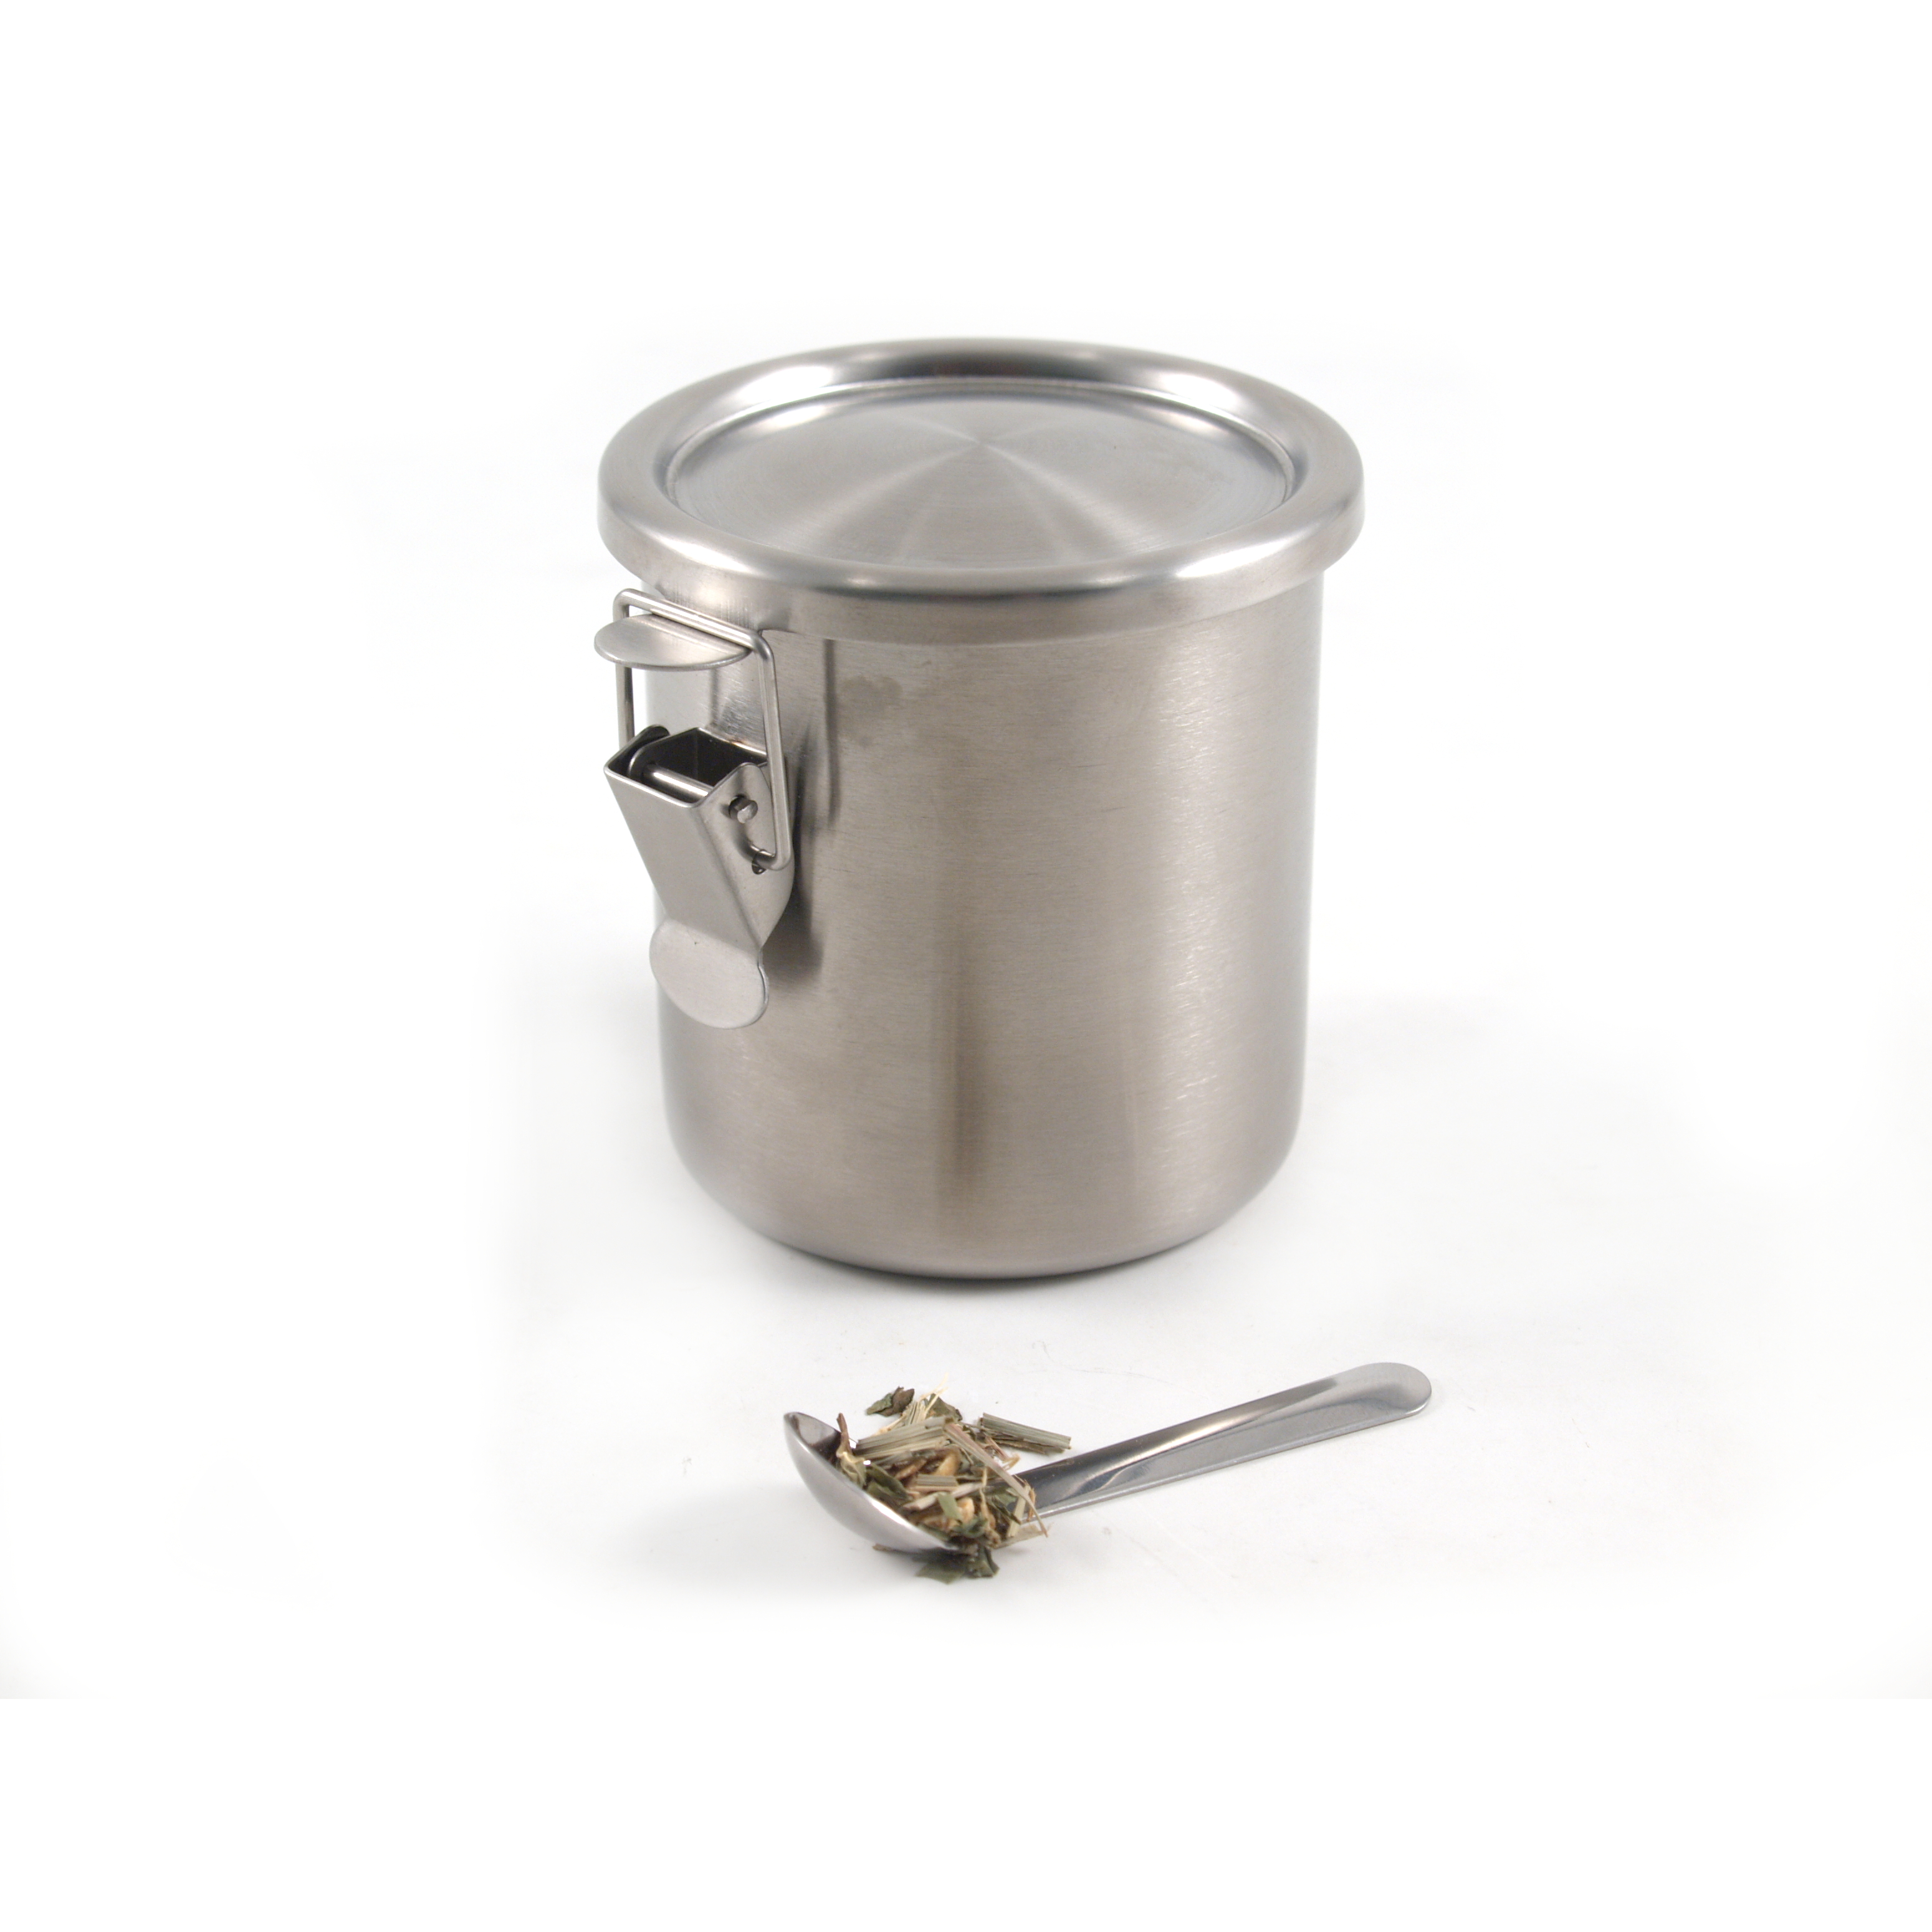 Silver Plated Teabag Caddy, Teapot Shaped